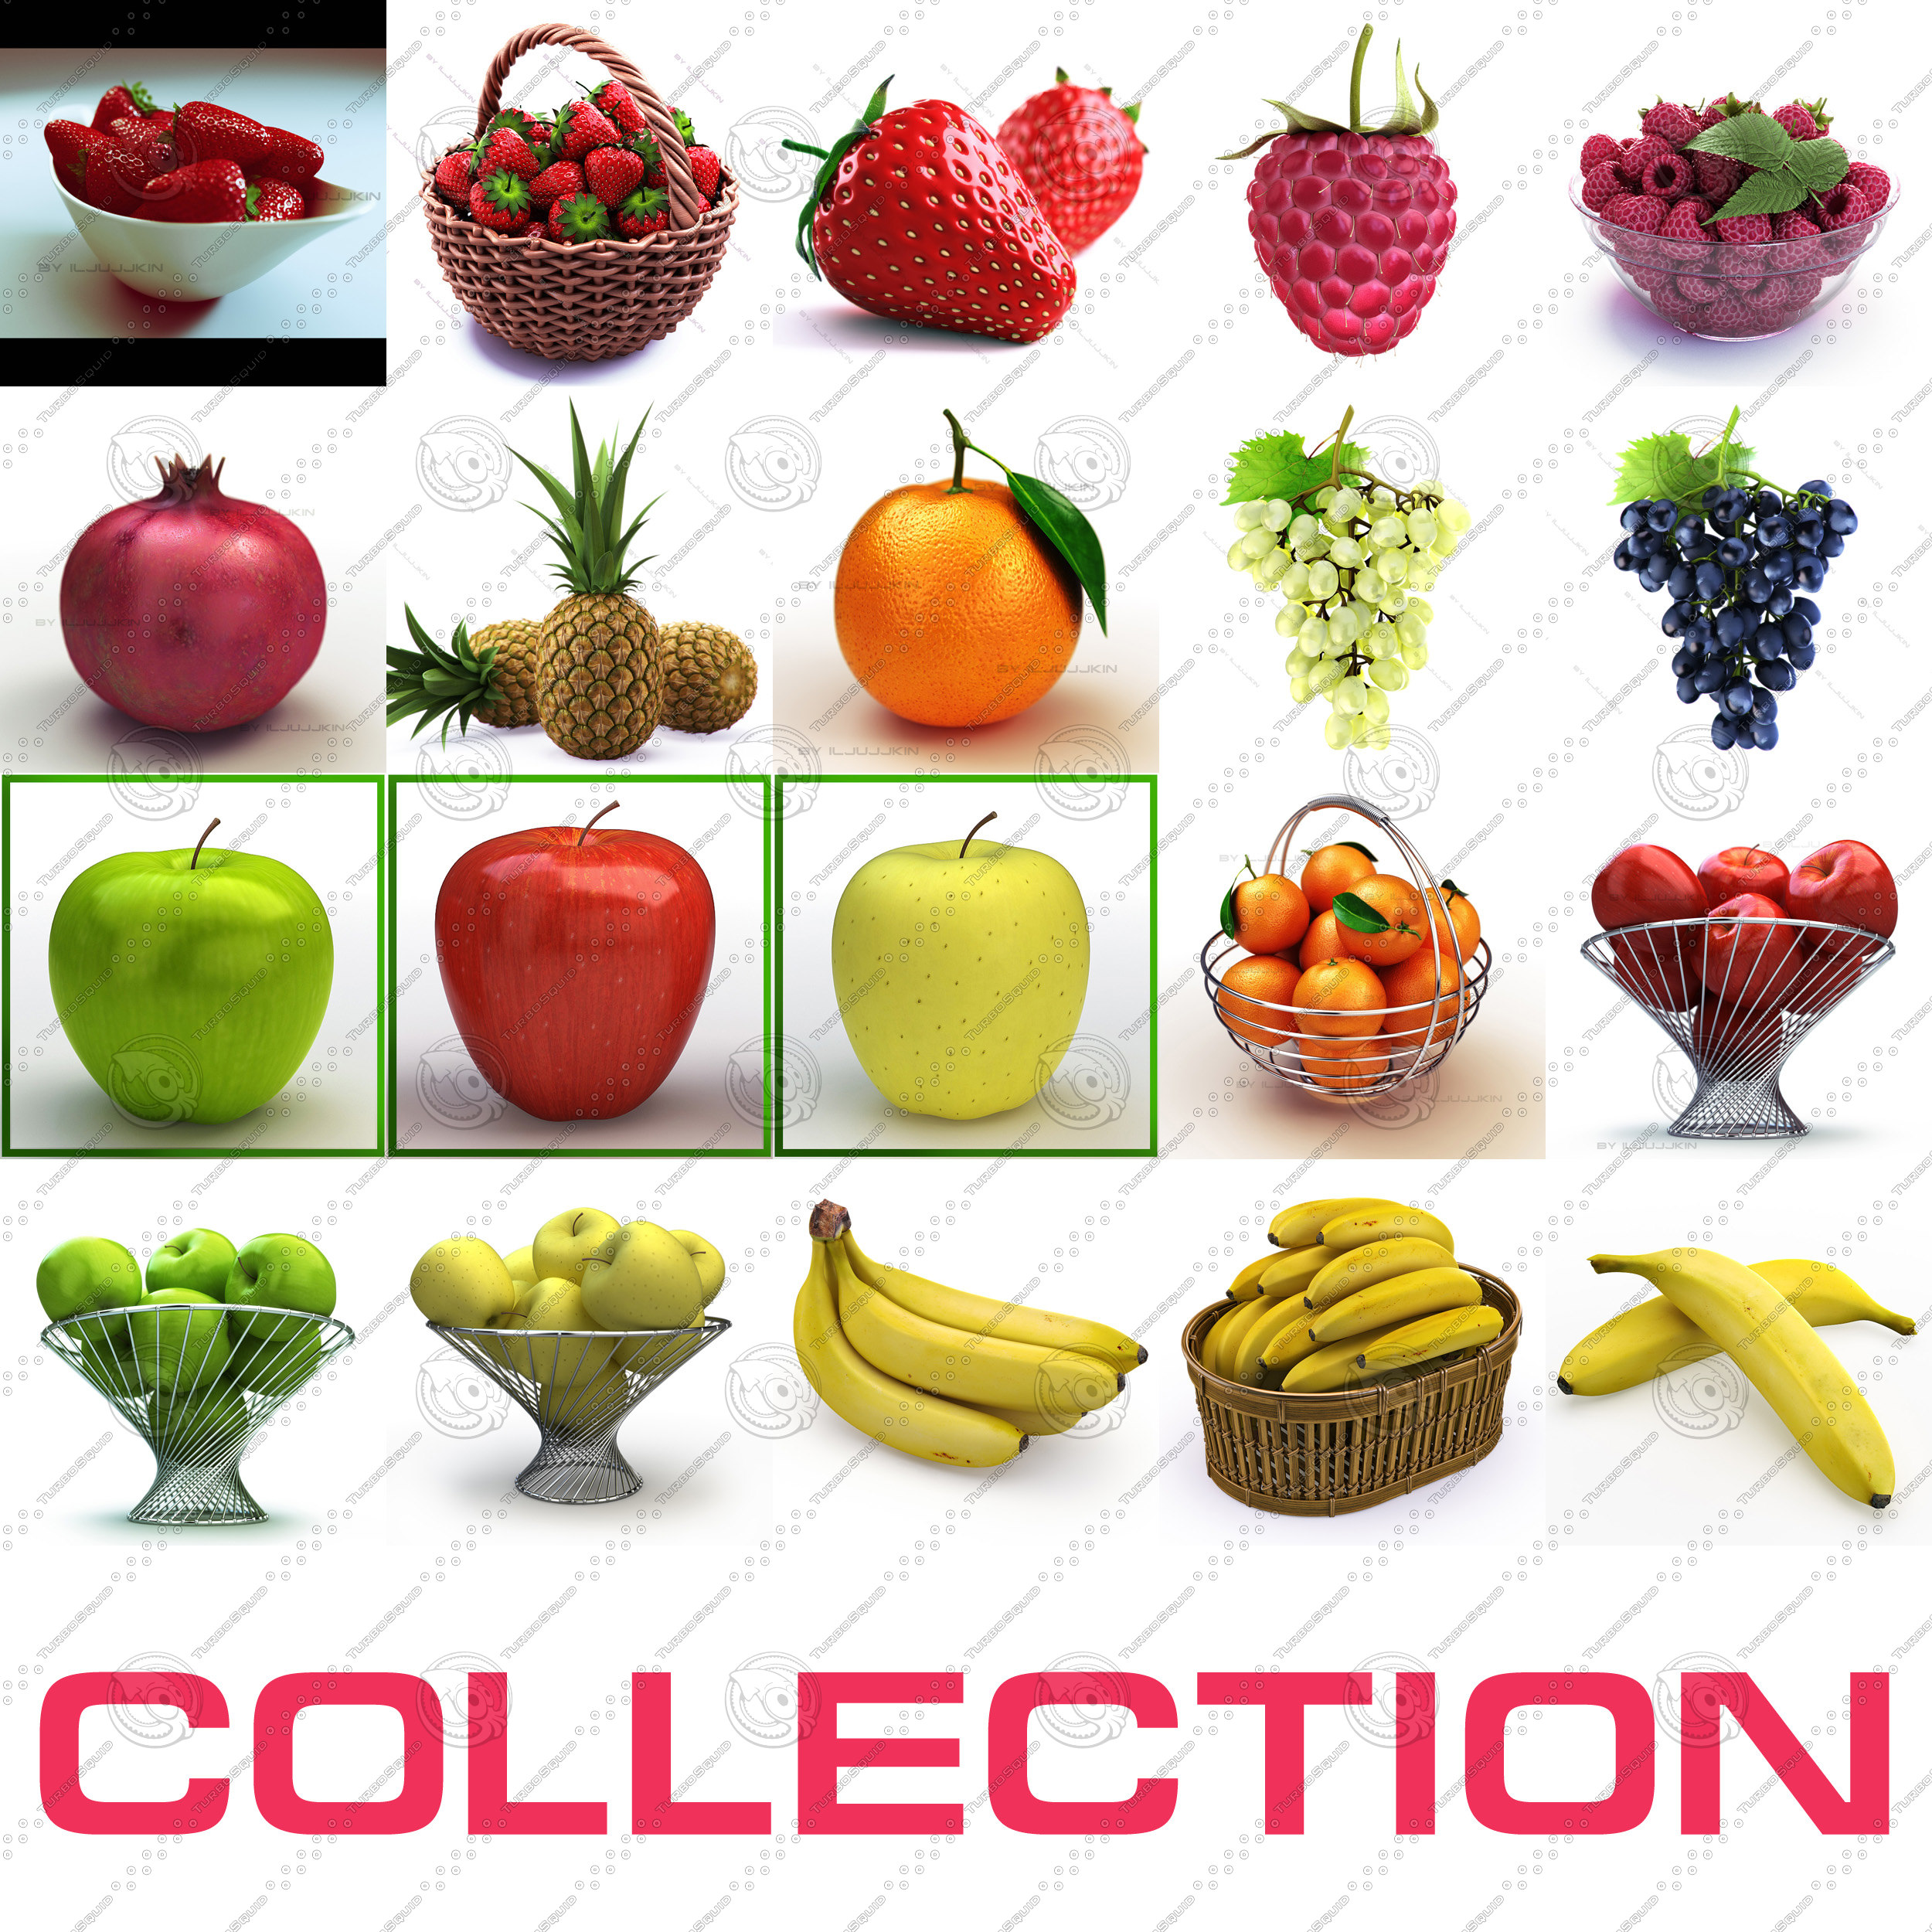 Collection_FRUITS.jpg